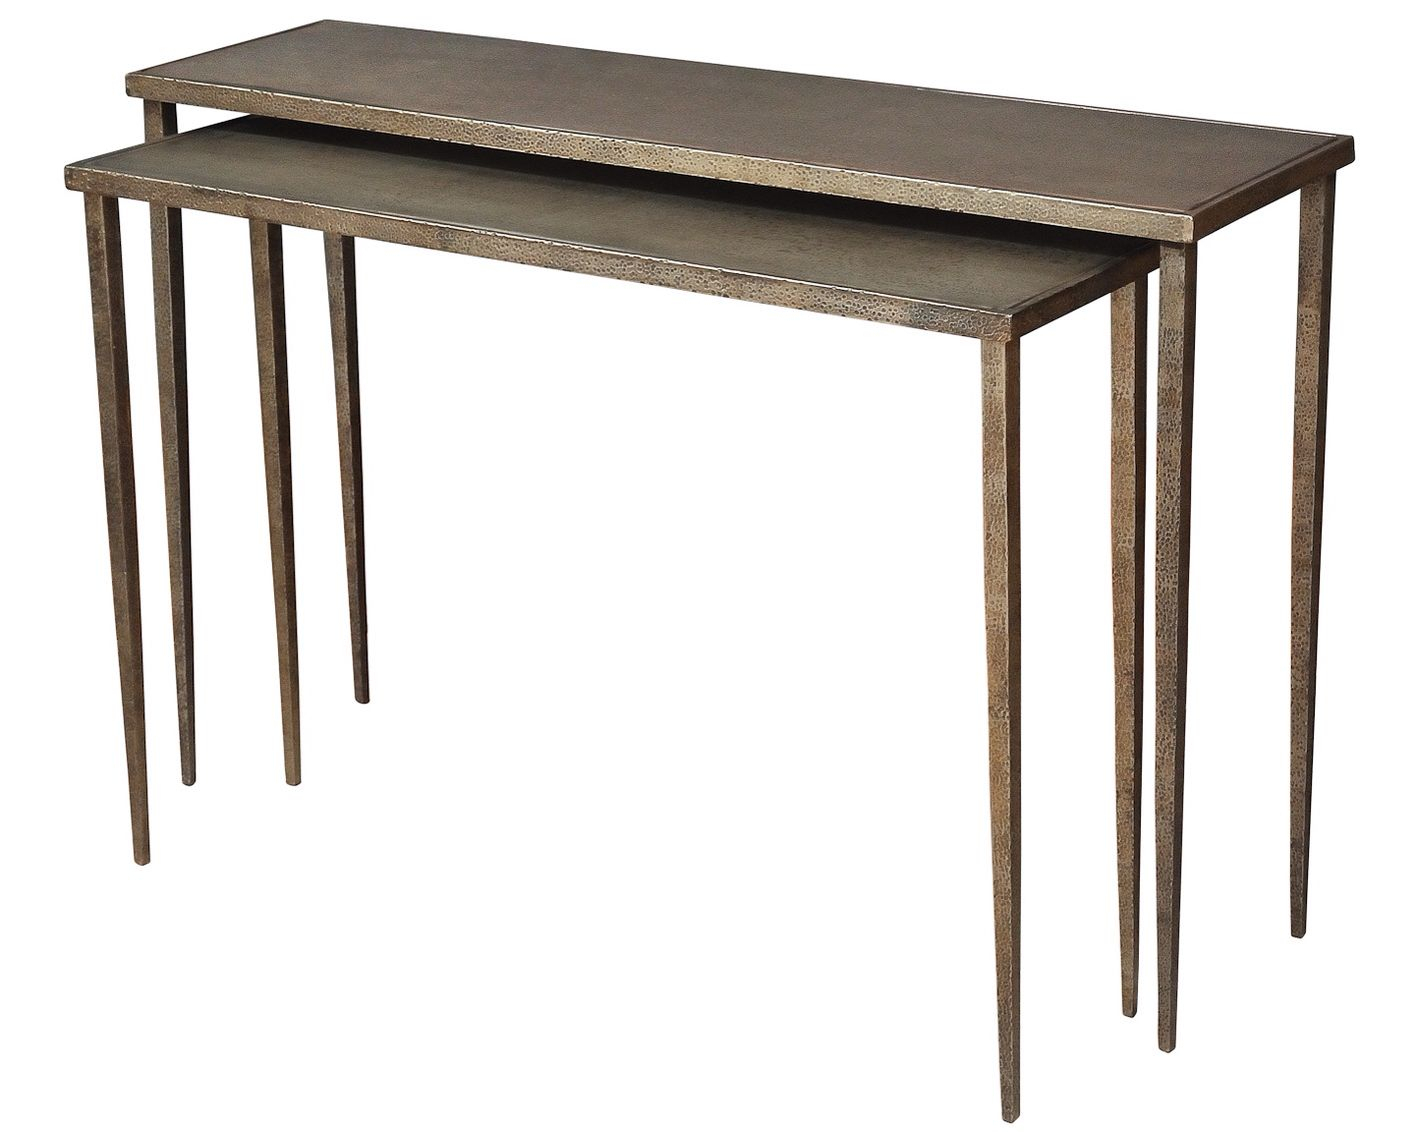 Hammered Sheet Metal Console Tables | My Designs | Pinterest With Parsons Walnut Top & Dark Steel Base 48x16 Console Tables (View 2 of 30)